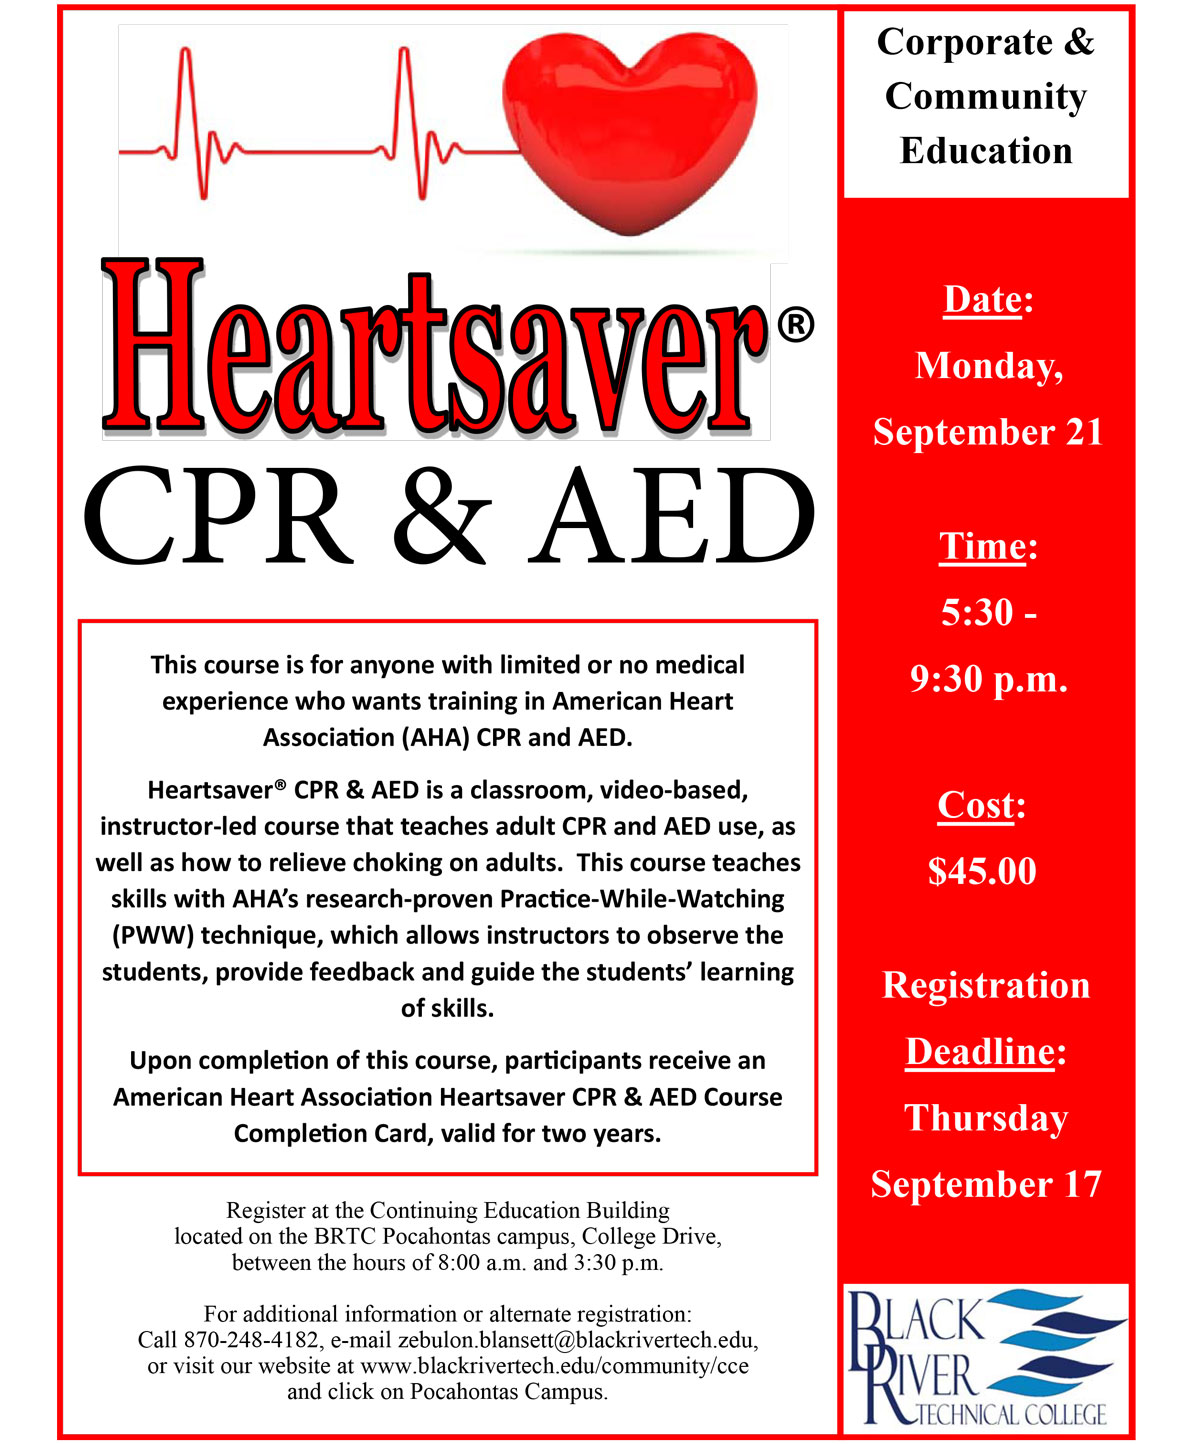 Heartsaver Cpr Amp Aed